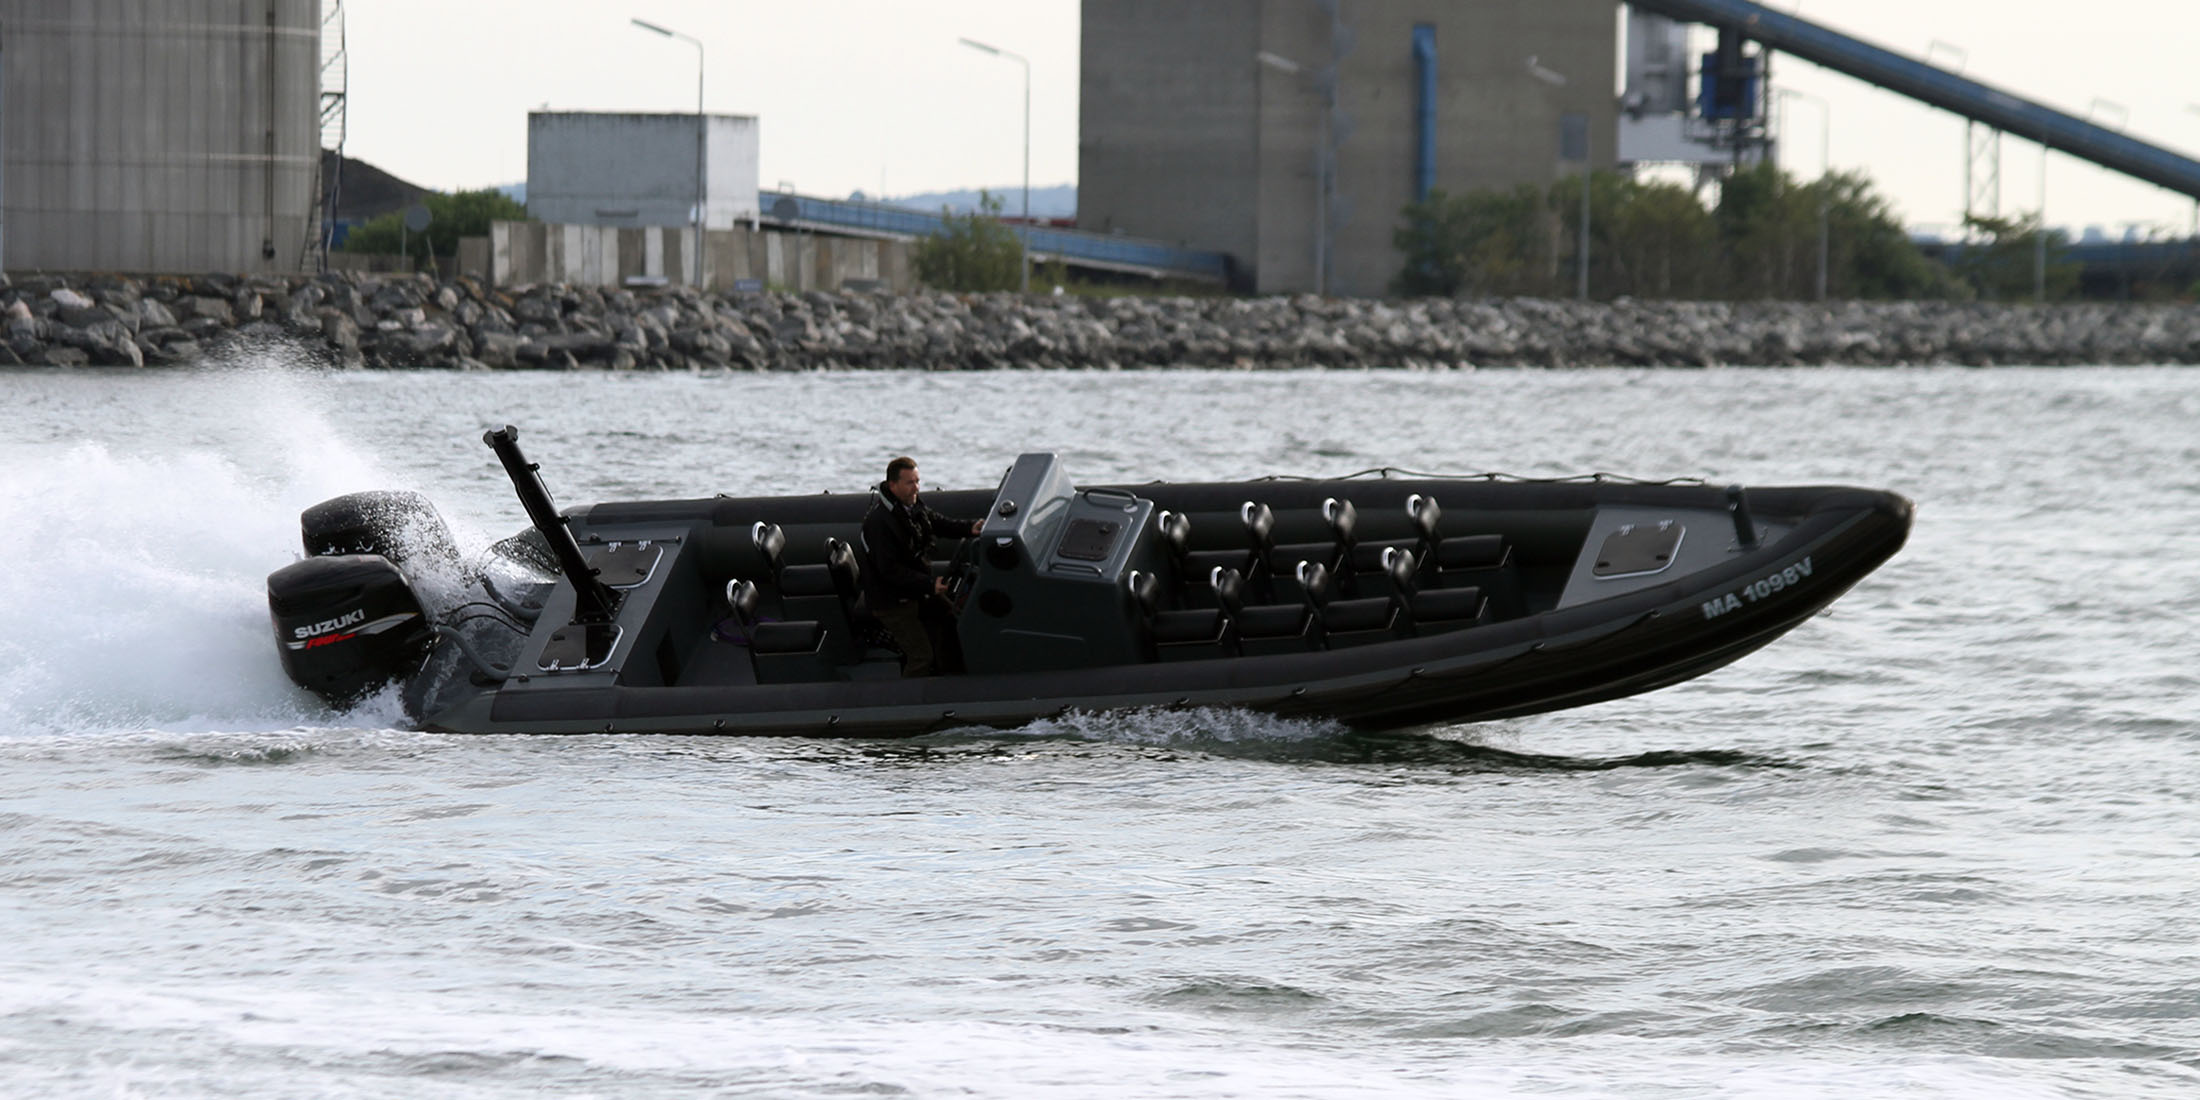 Rescue, offshore, military and police boats. Tornado 9.5m high performance RIB